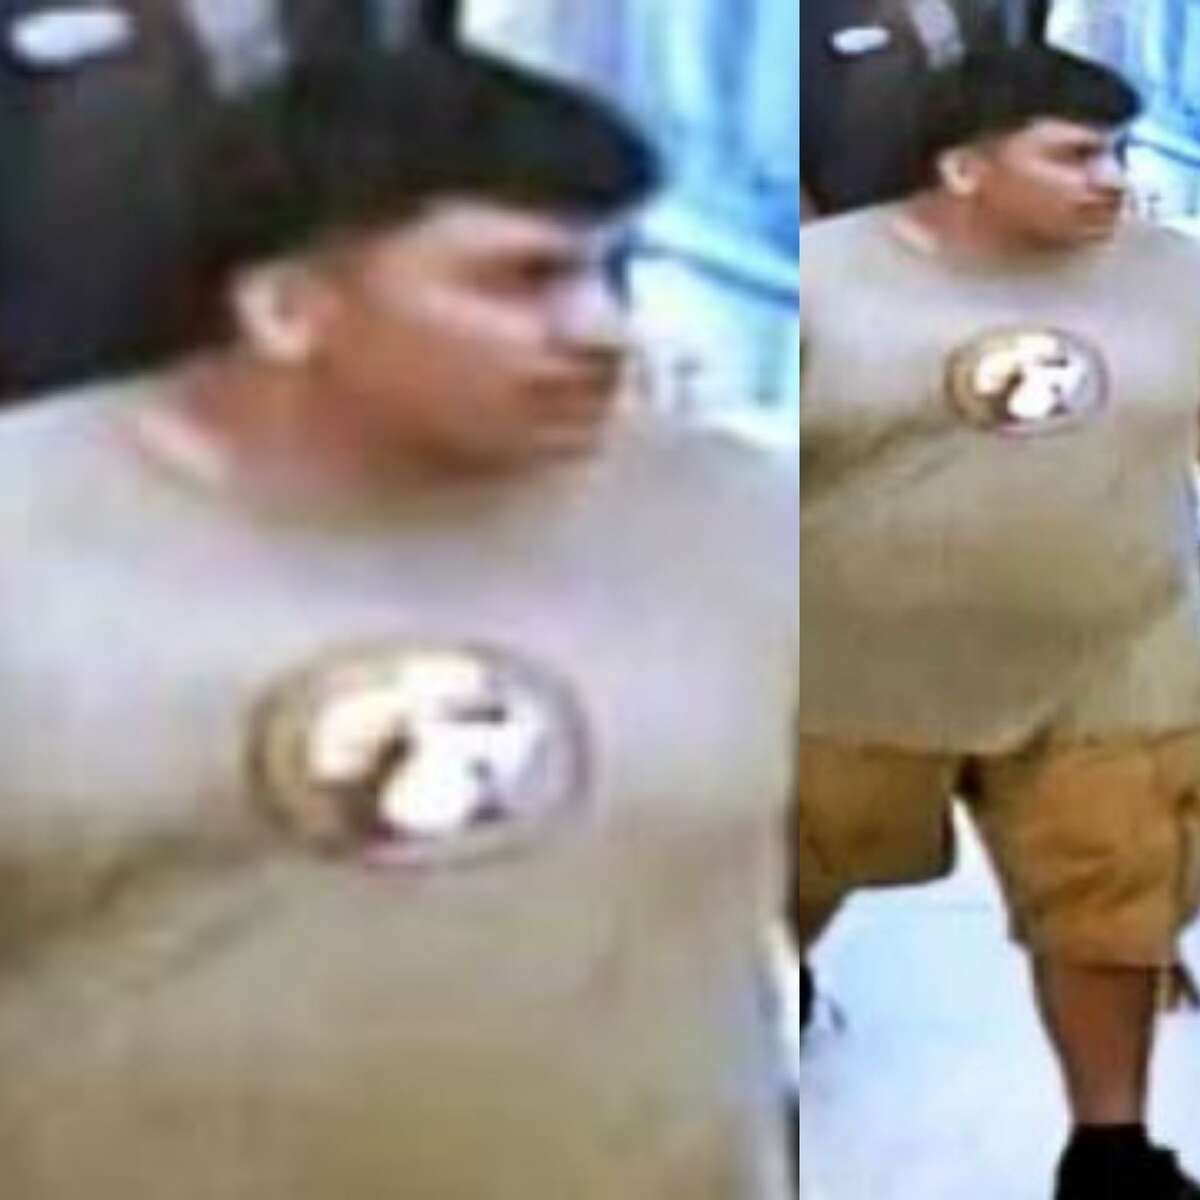 A man authorities have signaled as responsible for an assault in New Caney is seen in a Buc-ees T-shirt.